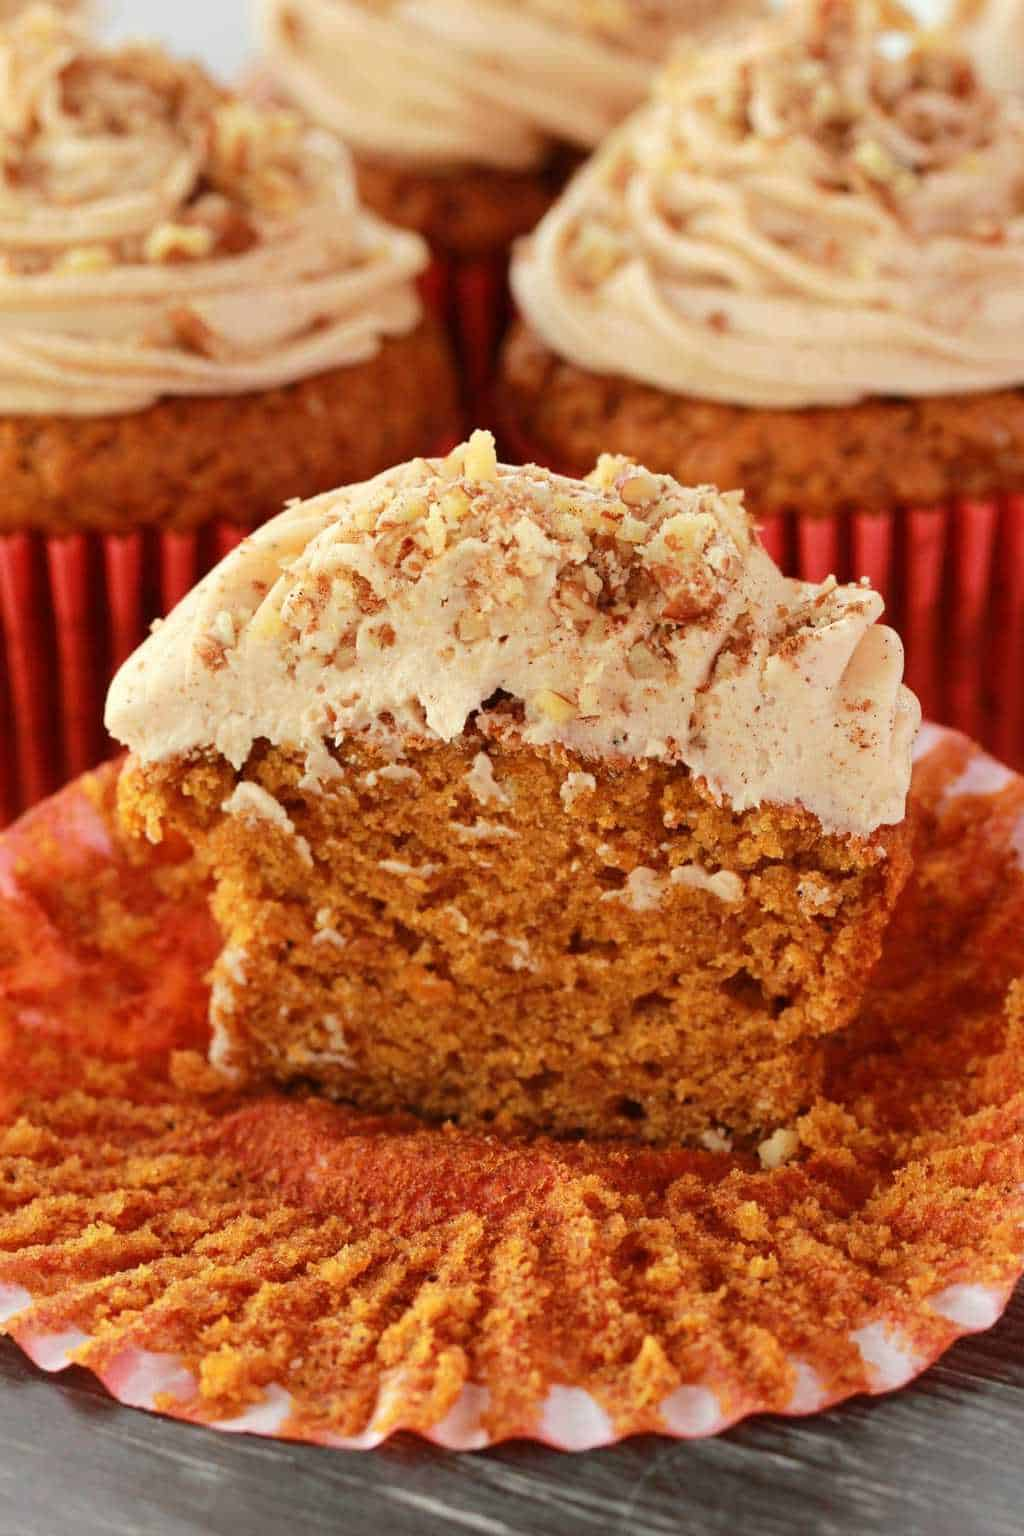 Vegan pumpkin cupcake cut in half to show the texture.